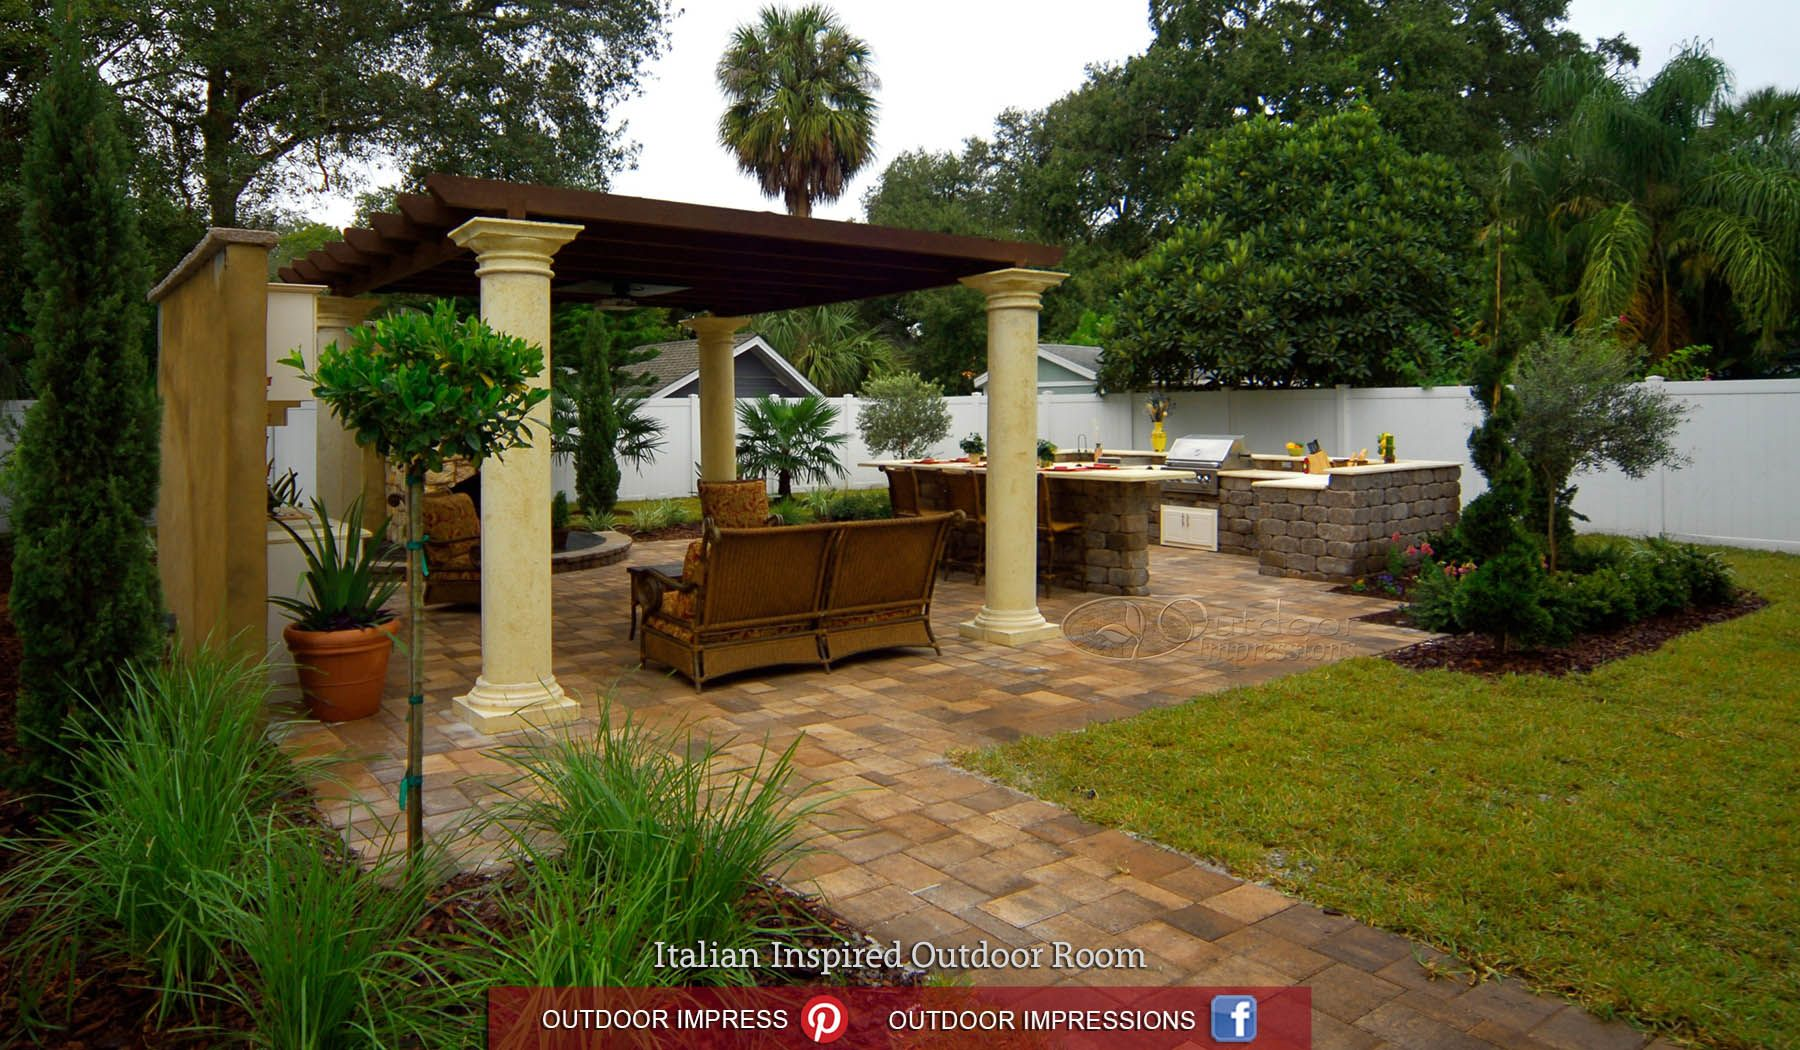 Diy outdoor kitchen kits  Yard Crashers  Outdoor Impressions Outdoor Kitchens Patios